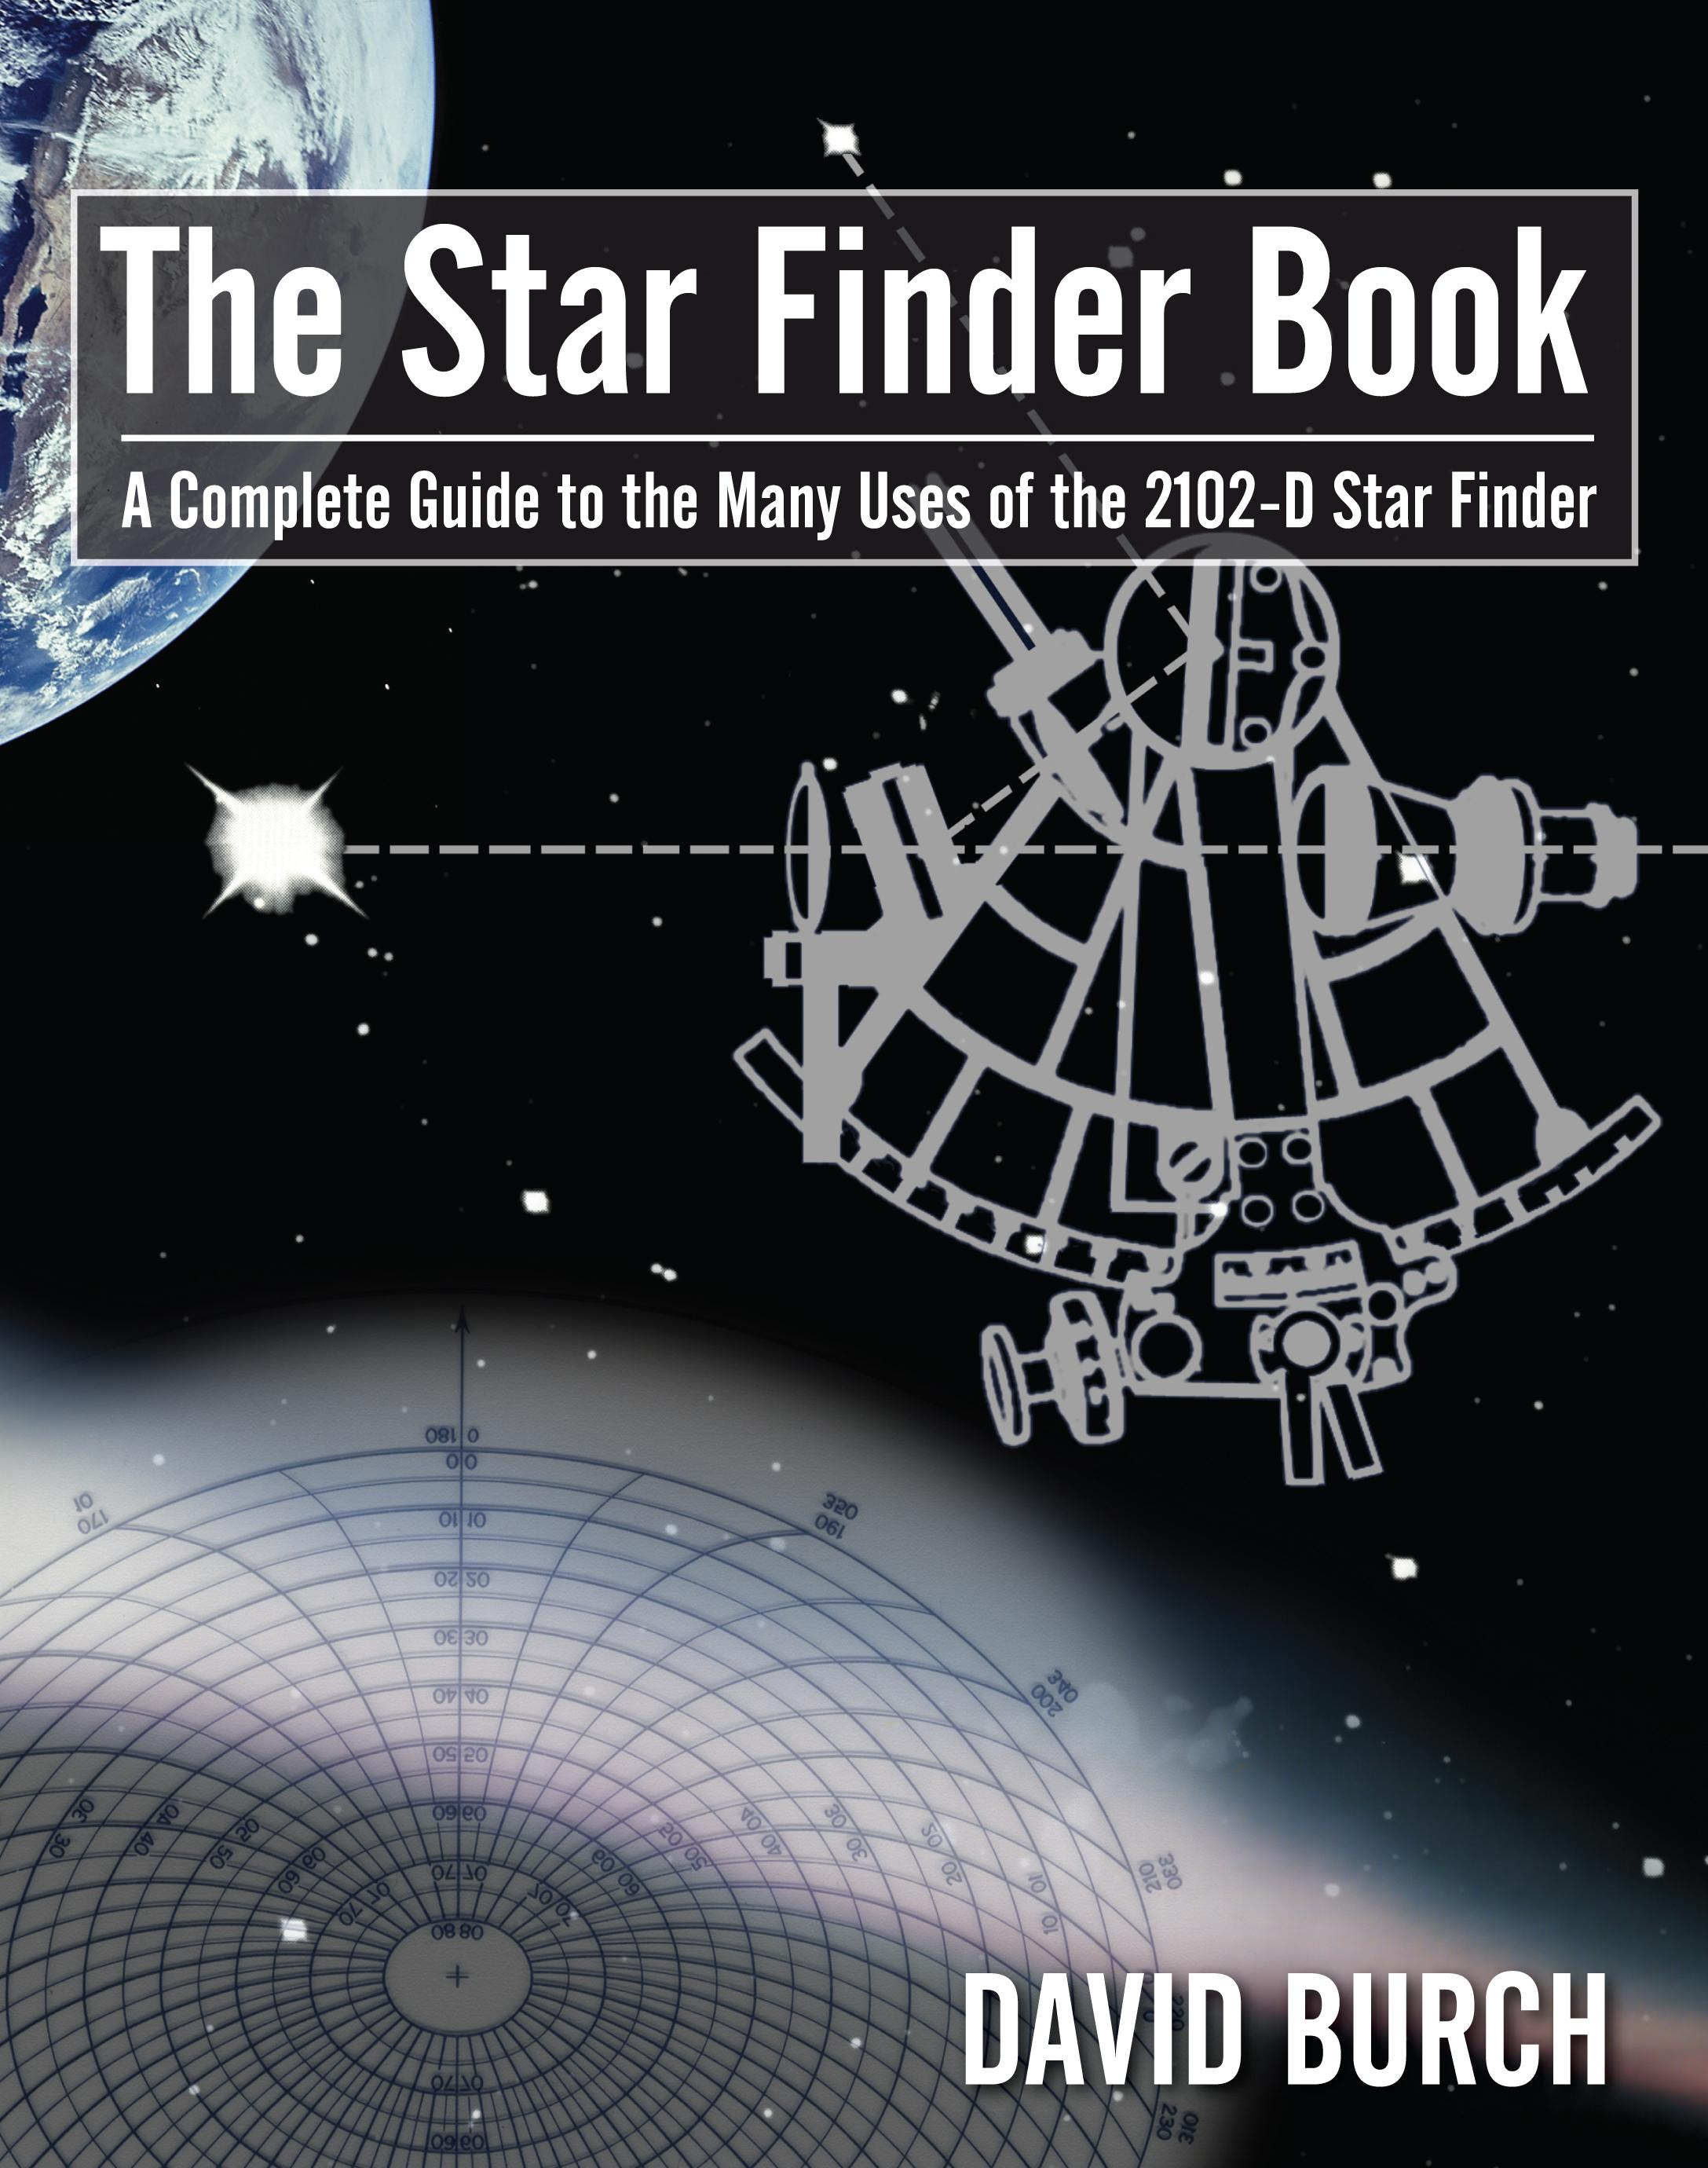 The Star Finder Book, Second Edition ? A Complete Guide to the Many Uses of the 2102-D Star Finder EB2370003276275